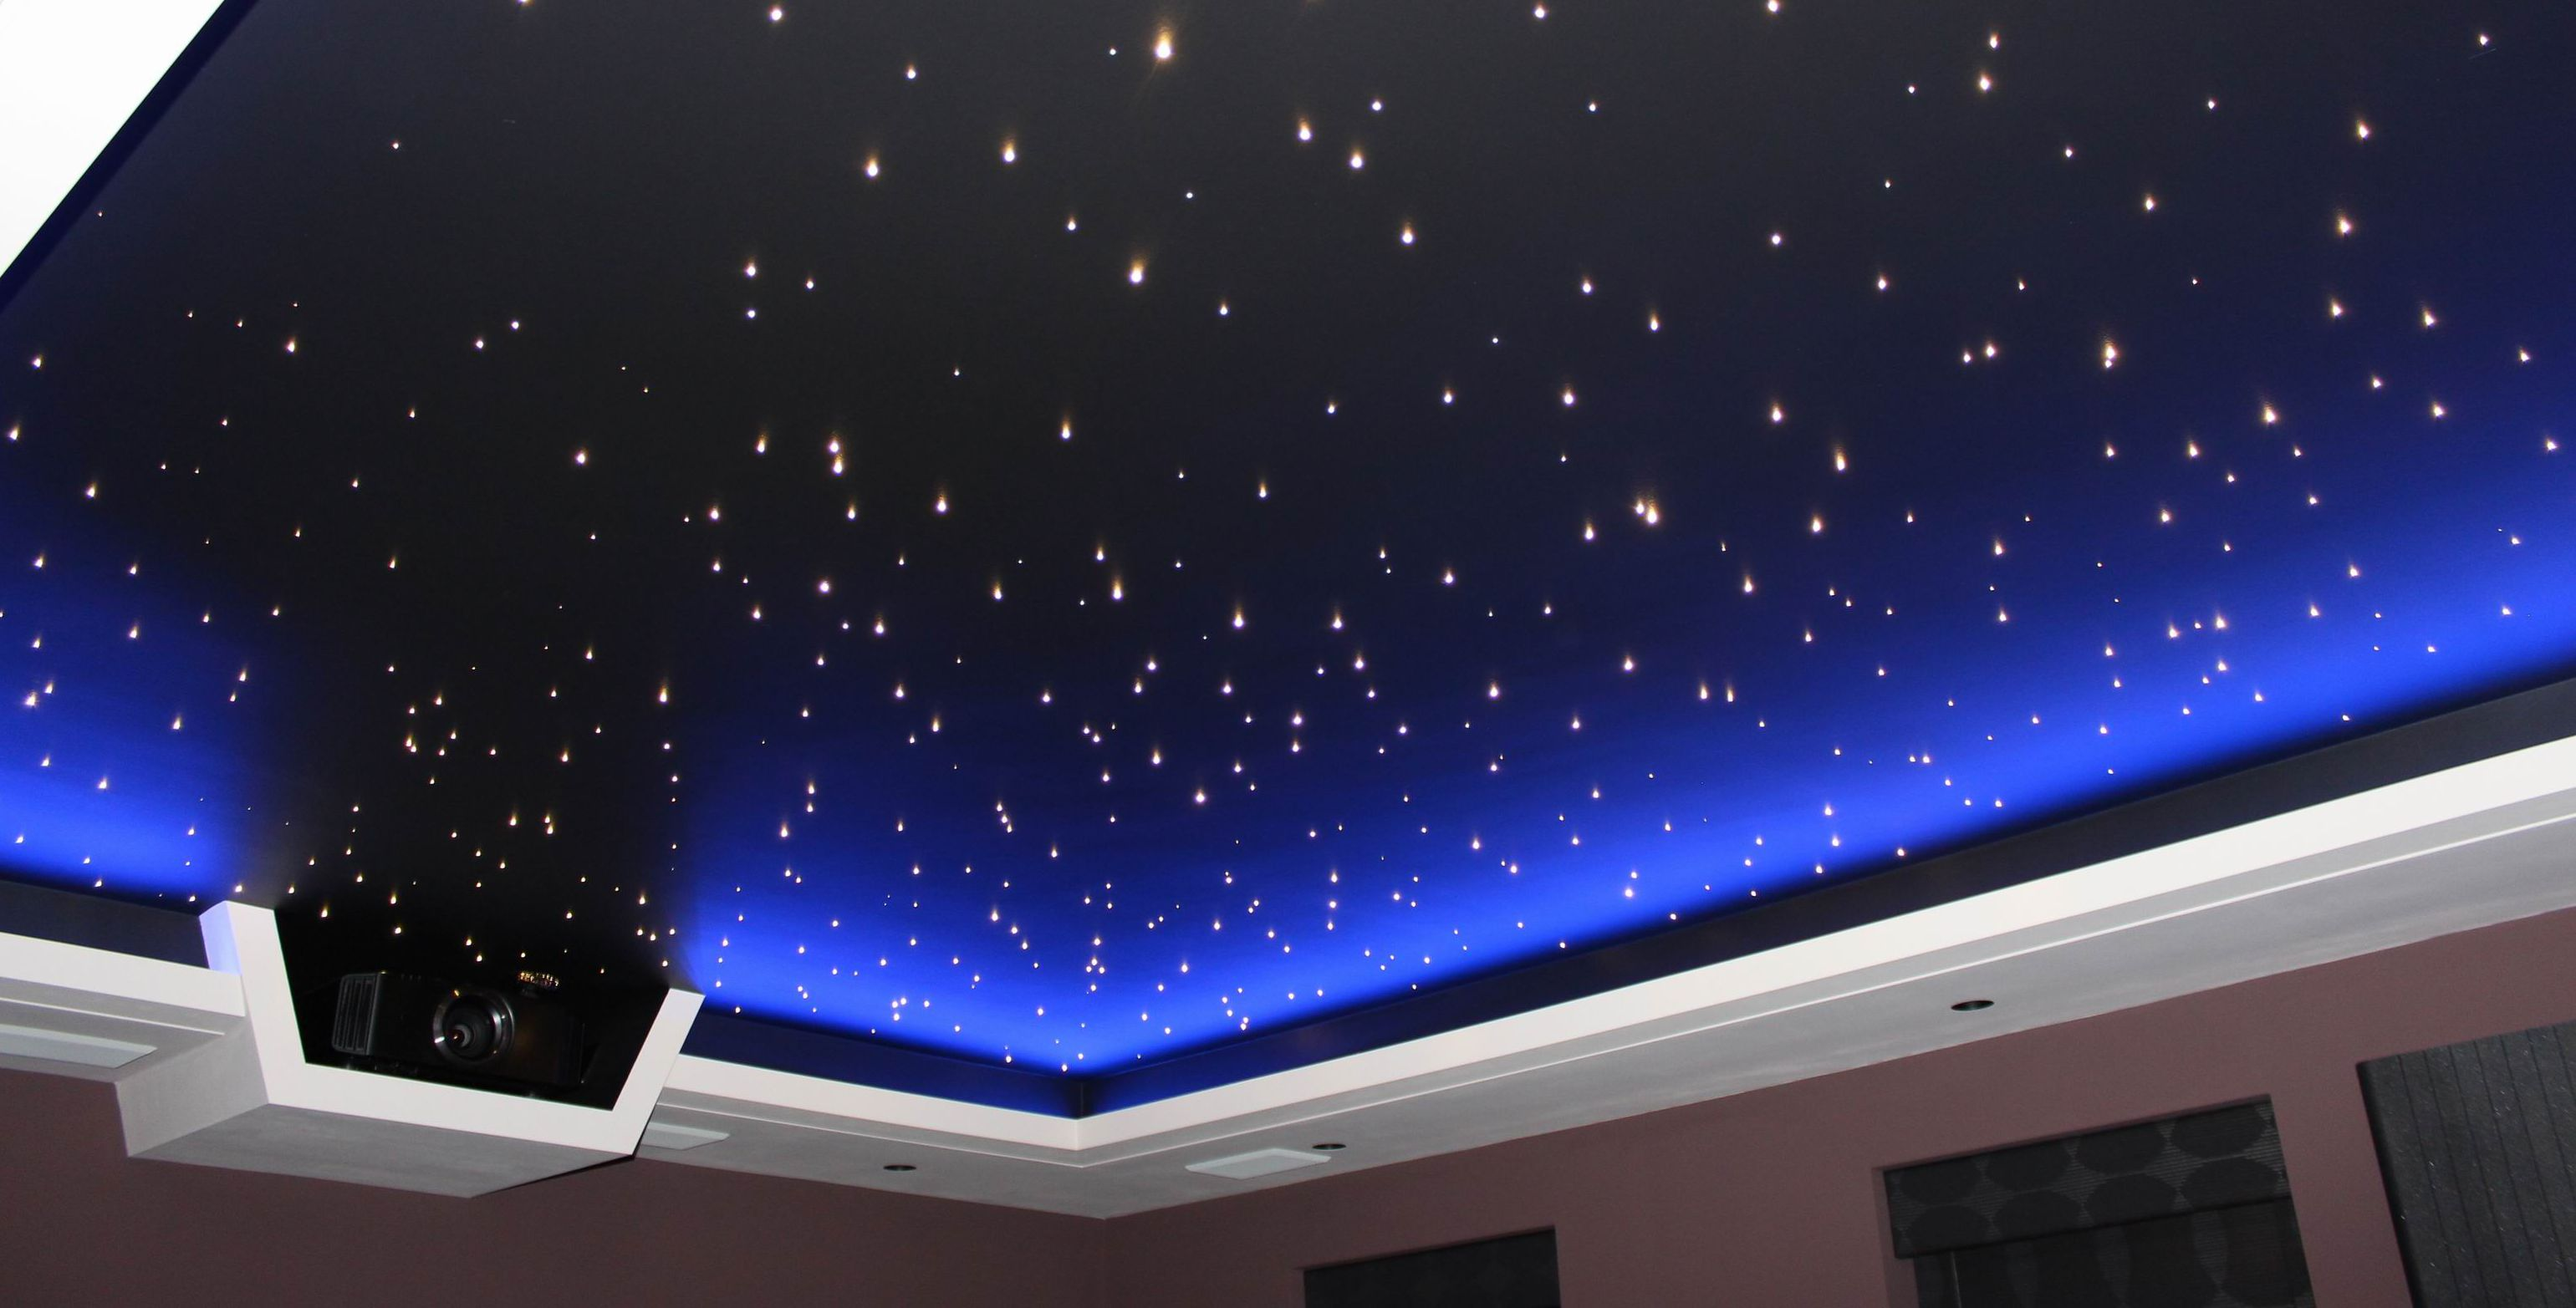 10 Facts To Know About Ceiling Led Star